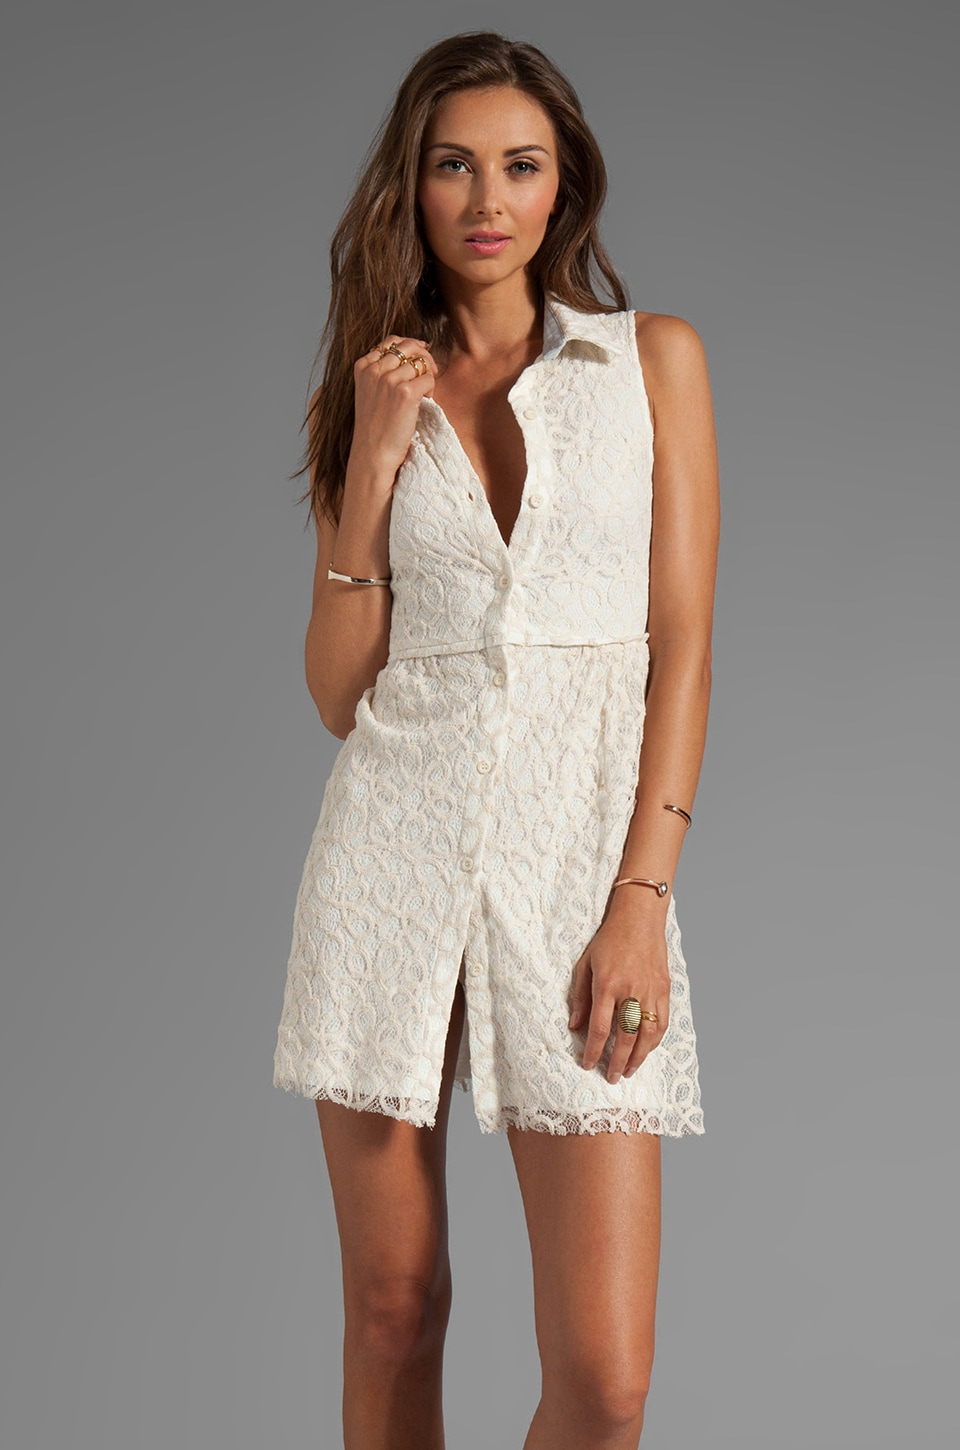 BY ZOE Nell Lace Dress in Off White